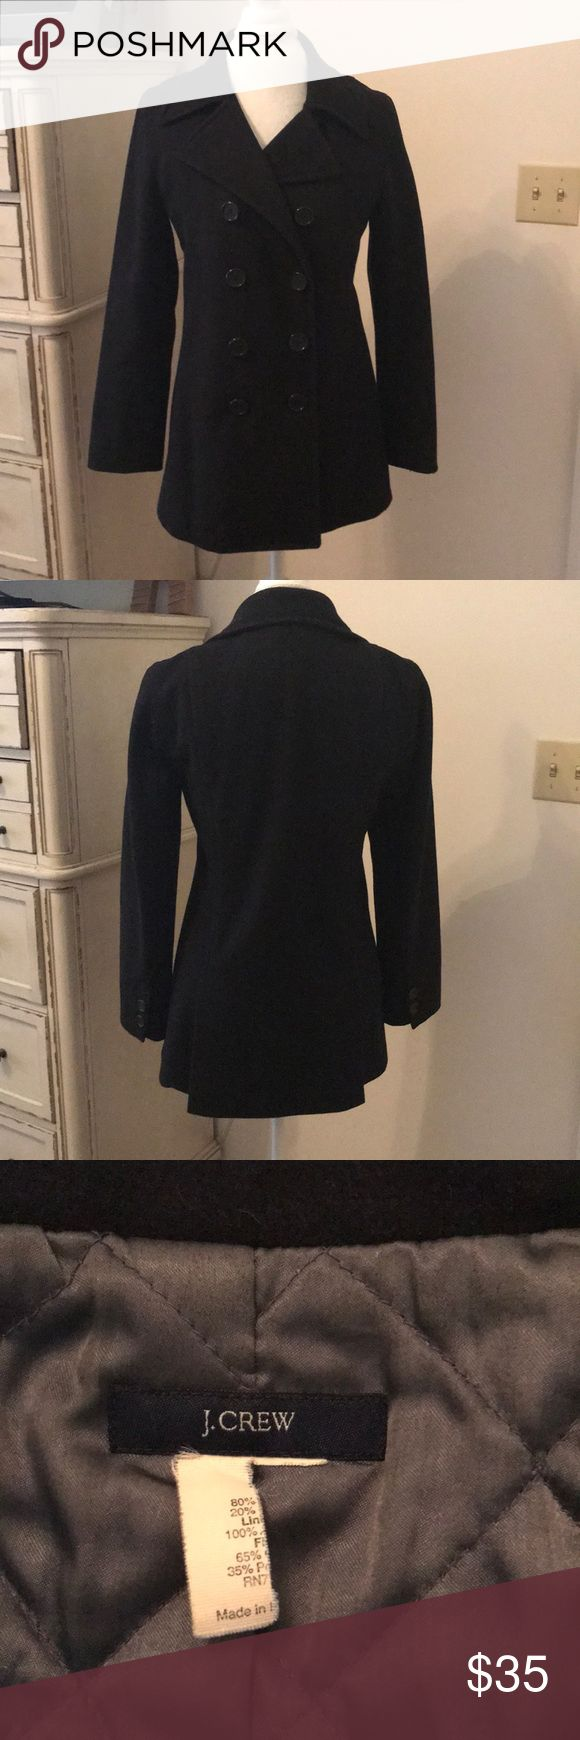 Jcrew thinsulate black pea coat Classic black pea coat. Very very warm and I love it but it's too small this year. Some war meat on the inside noted in last picture. Great for dressy occasion or with jeans. So versatile and did I mention warm! J. Crew Jackets & Coats Pea Coats